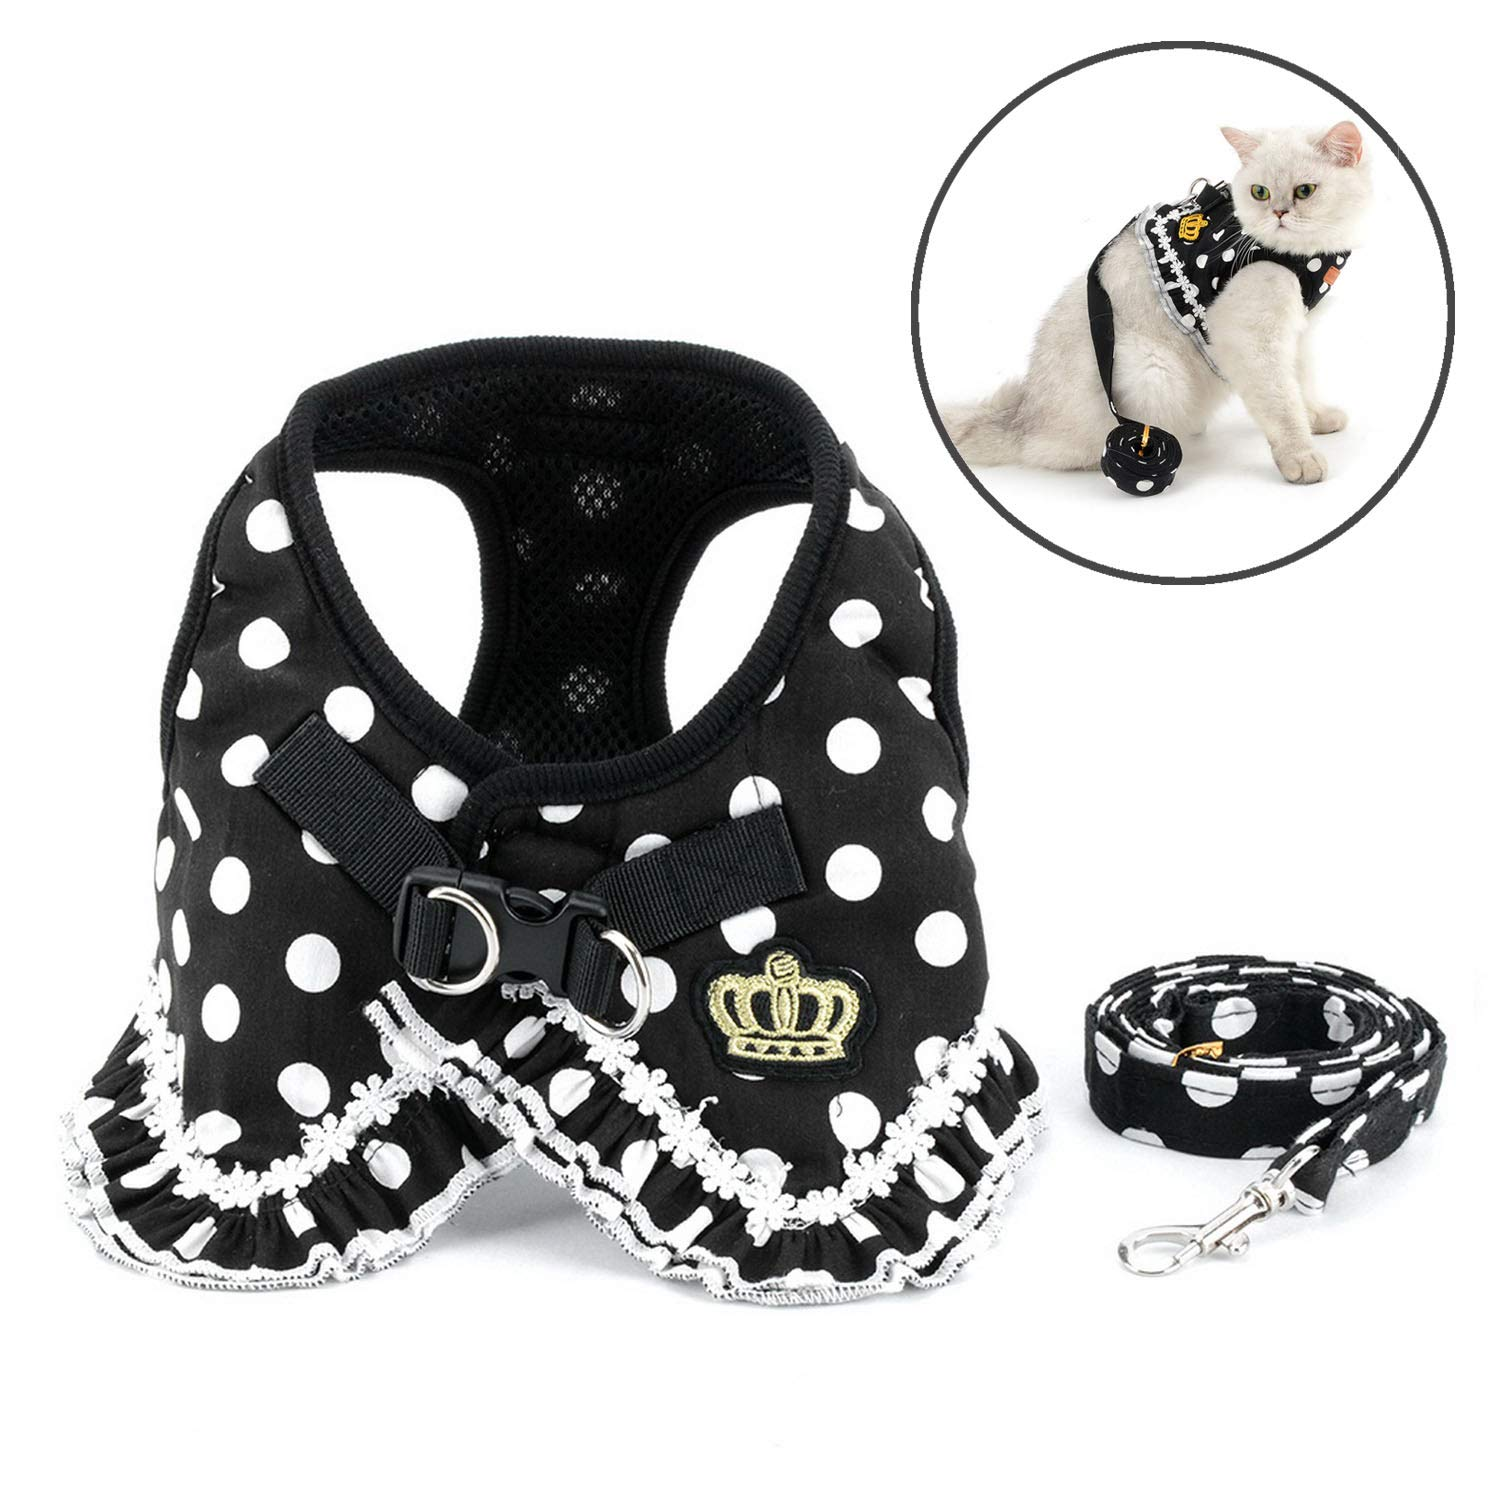 Zunea Polka Dots Cat Harness and Leash Set Girl Kitten Crown Escape Proof No Pull Choke Vest Clothes for Walking, Step in Soft Mesh Padded Puppy Harness for Small Dog Black S by Zunea